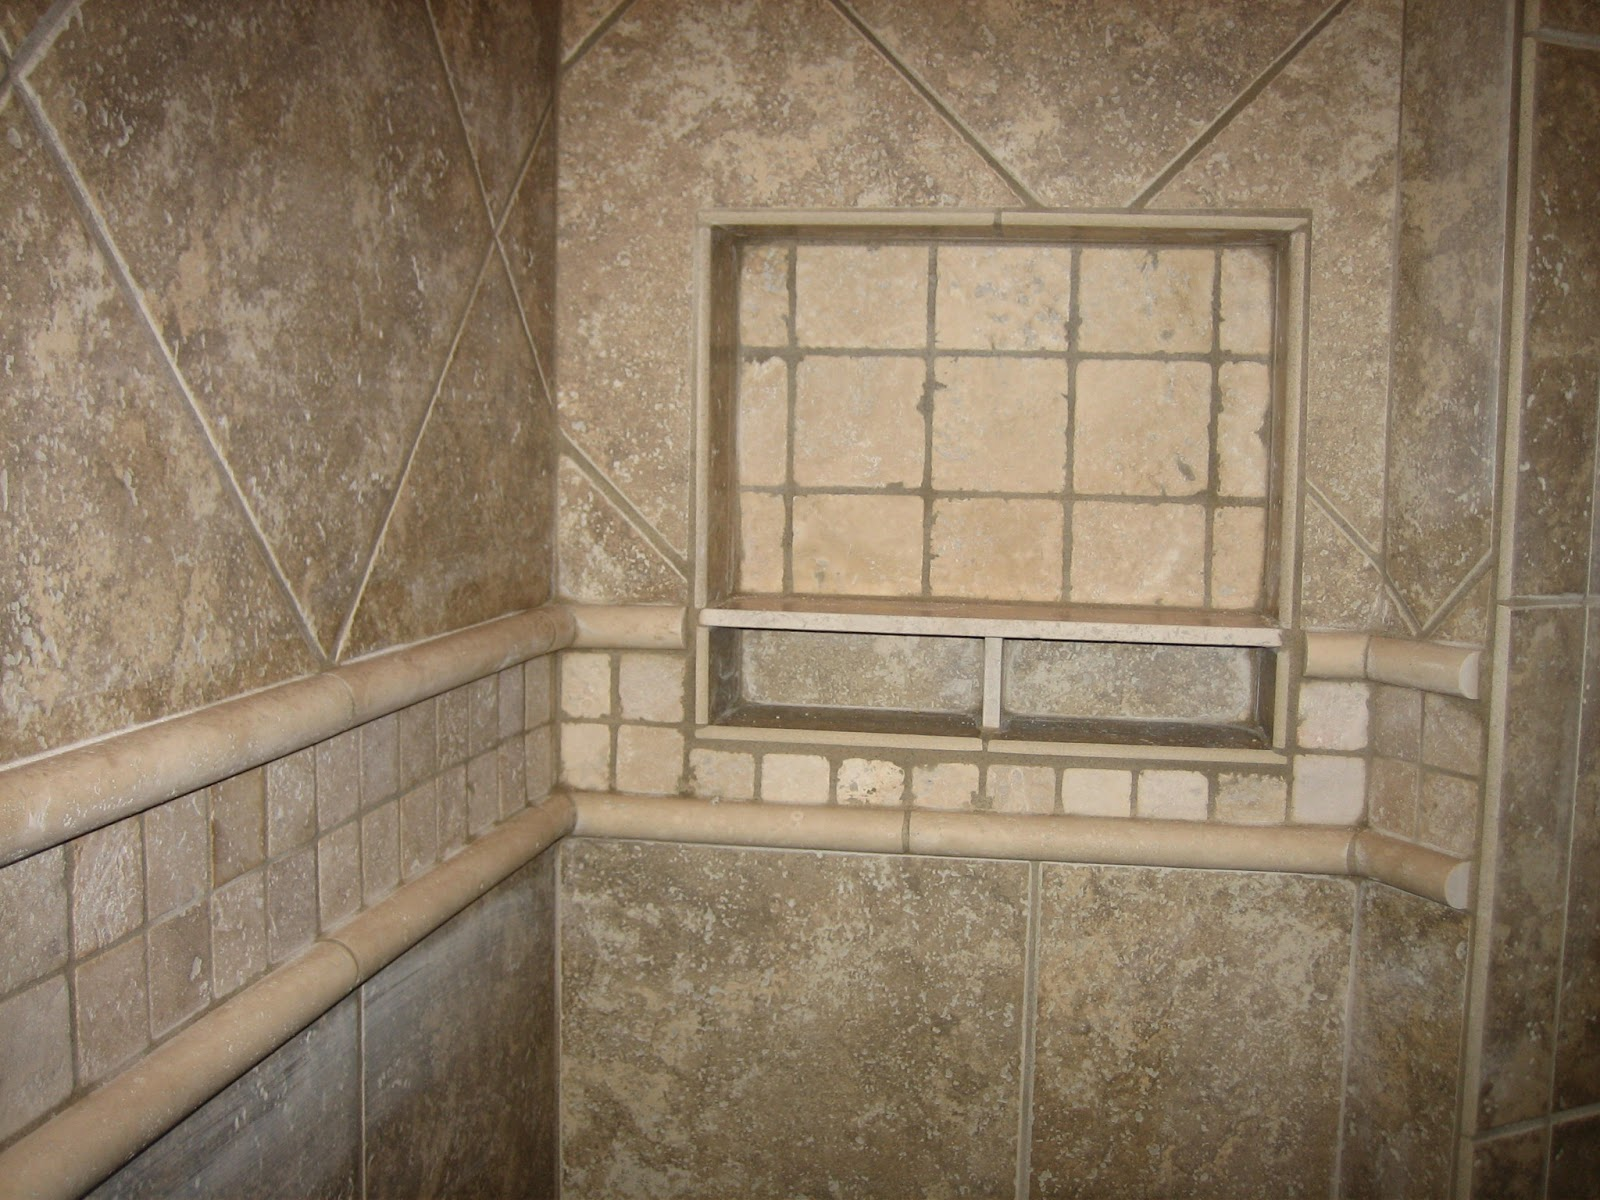 pictures shower tile pictures tiled shower pictures tile shower photos - Shower Tile Design Ideas